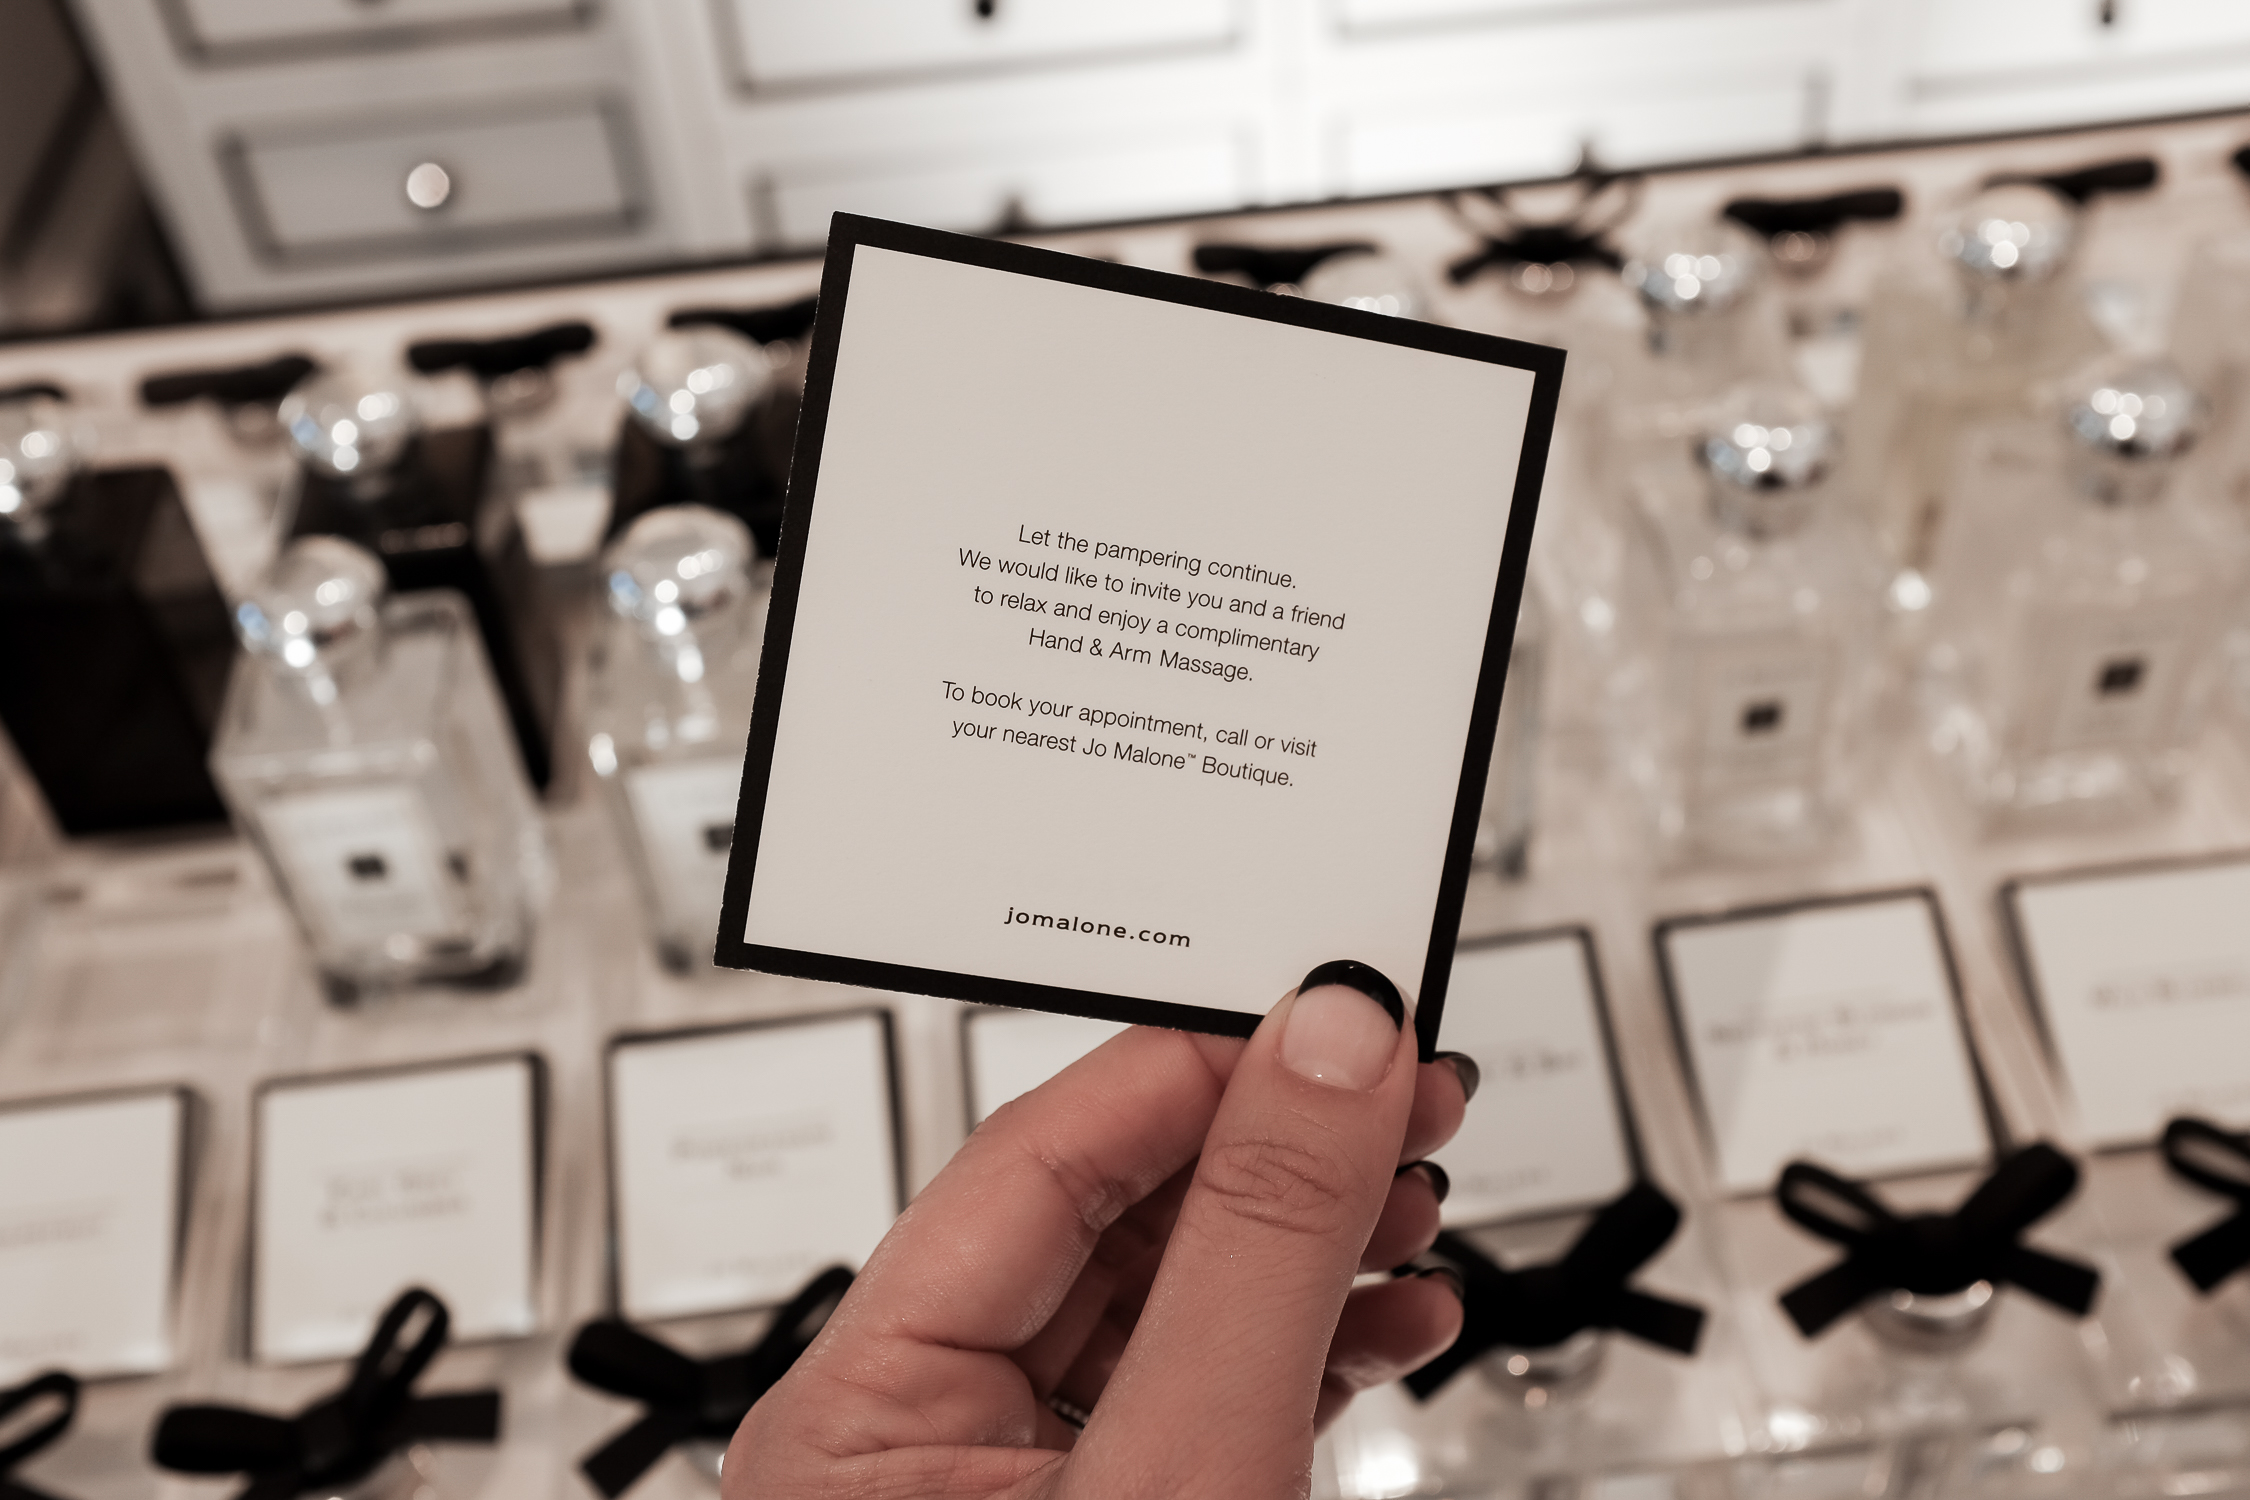 Love at first scent jo malone london style mba dscf0193 dscf0181 dscf0192 dscf0199 dscf0204 dscf0203 kristyandbryce Image collections